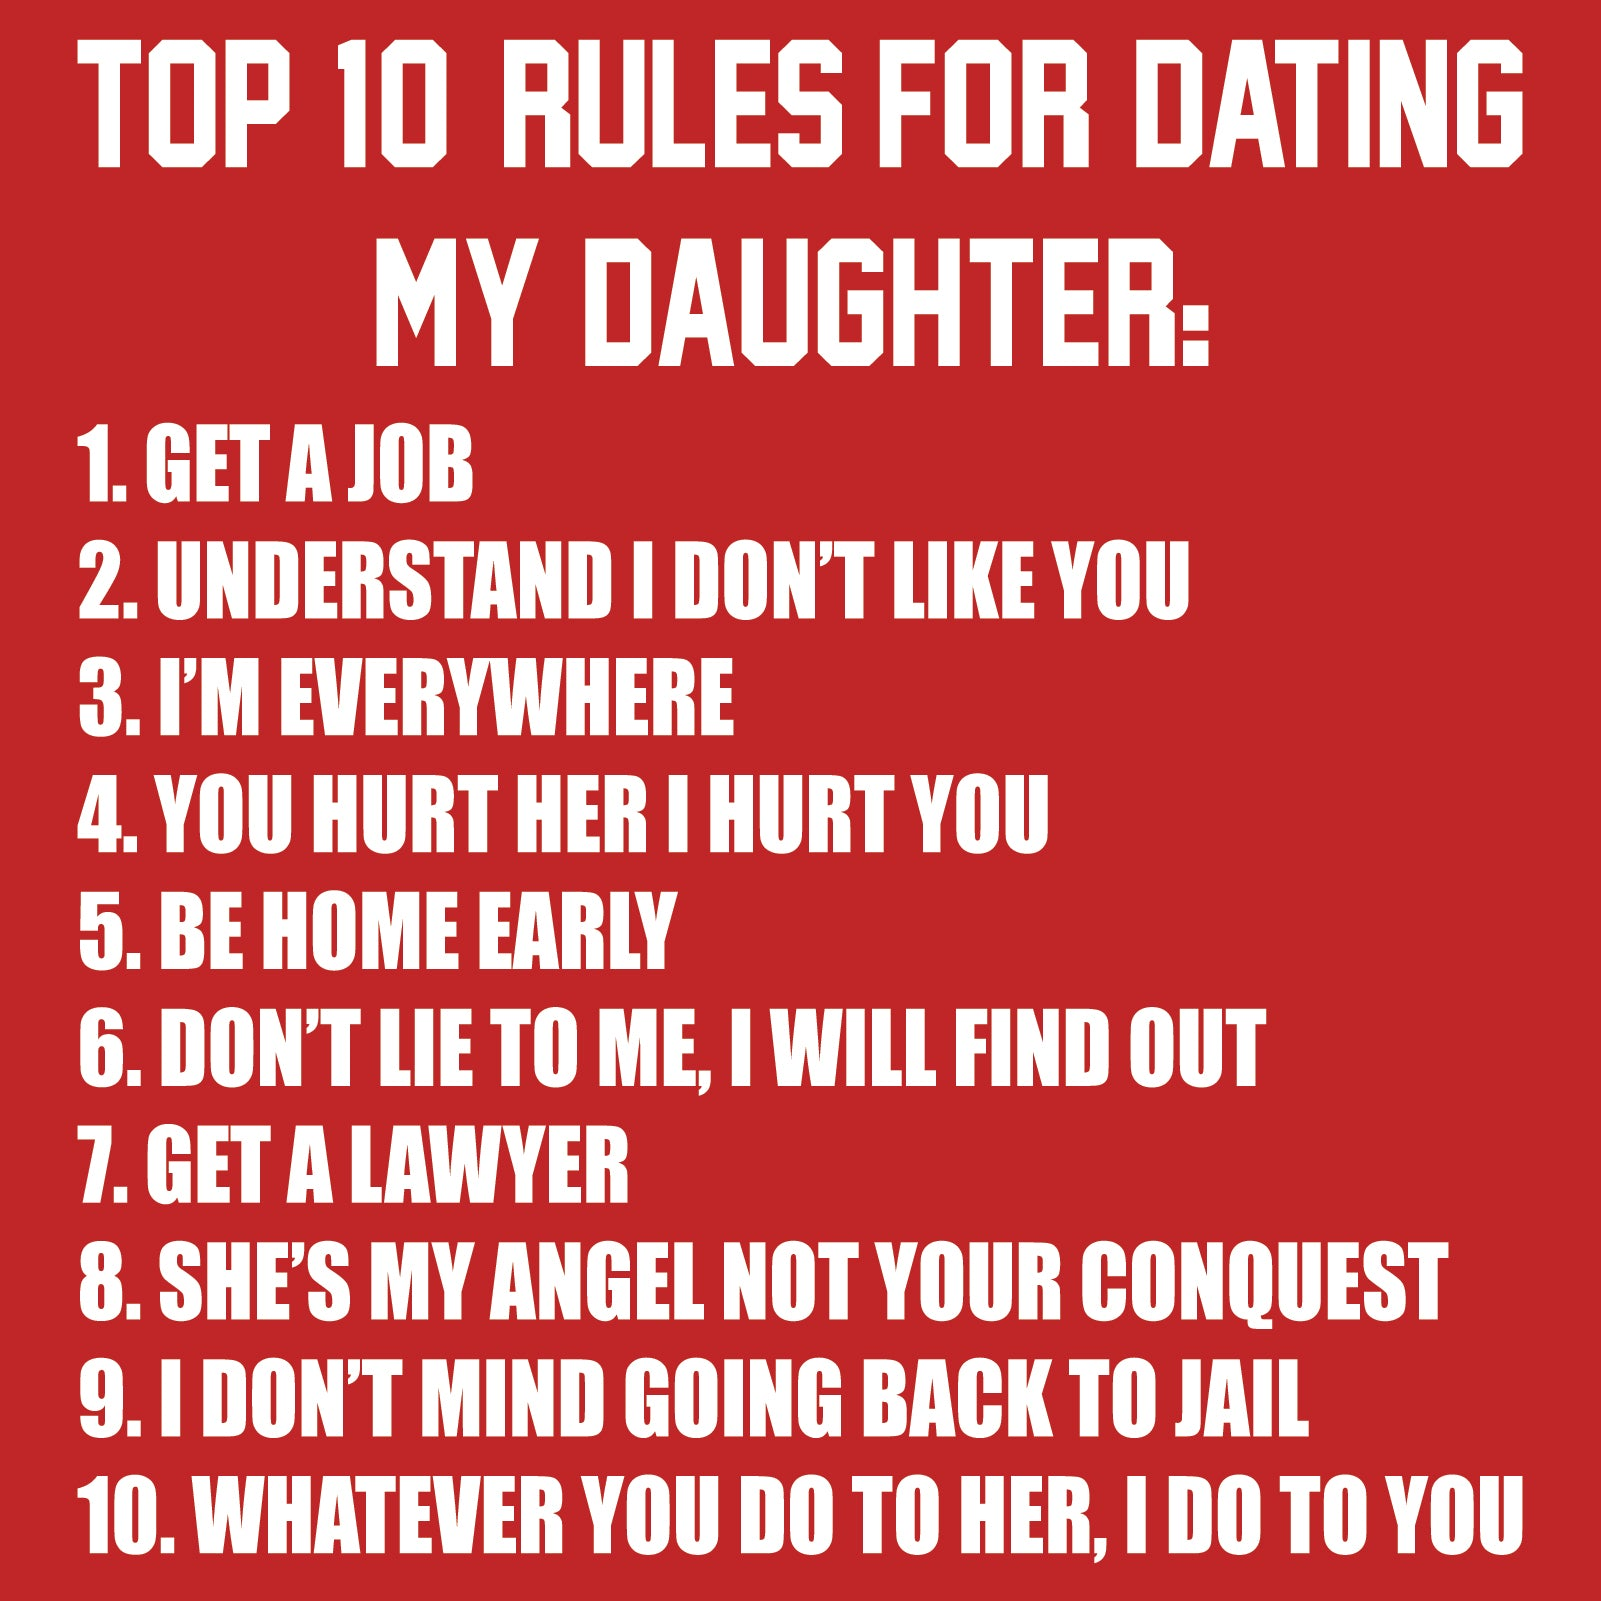 Rules of dating my daughter show